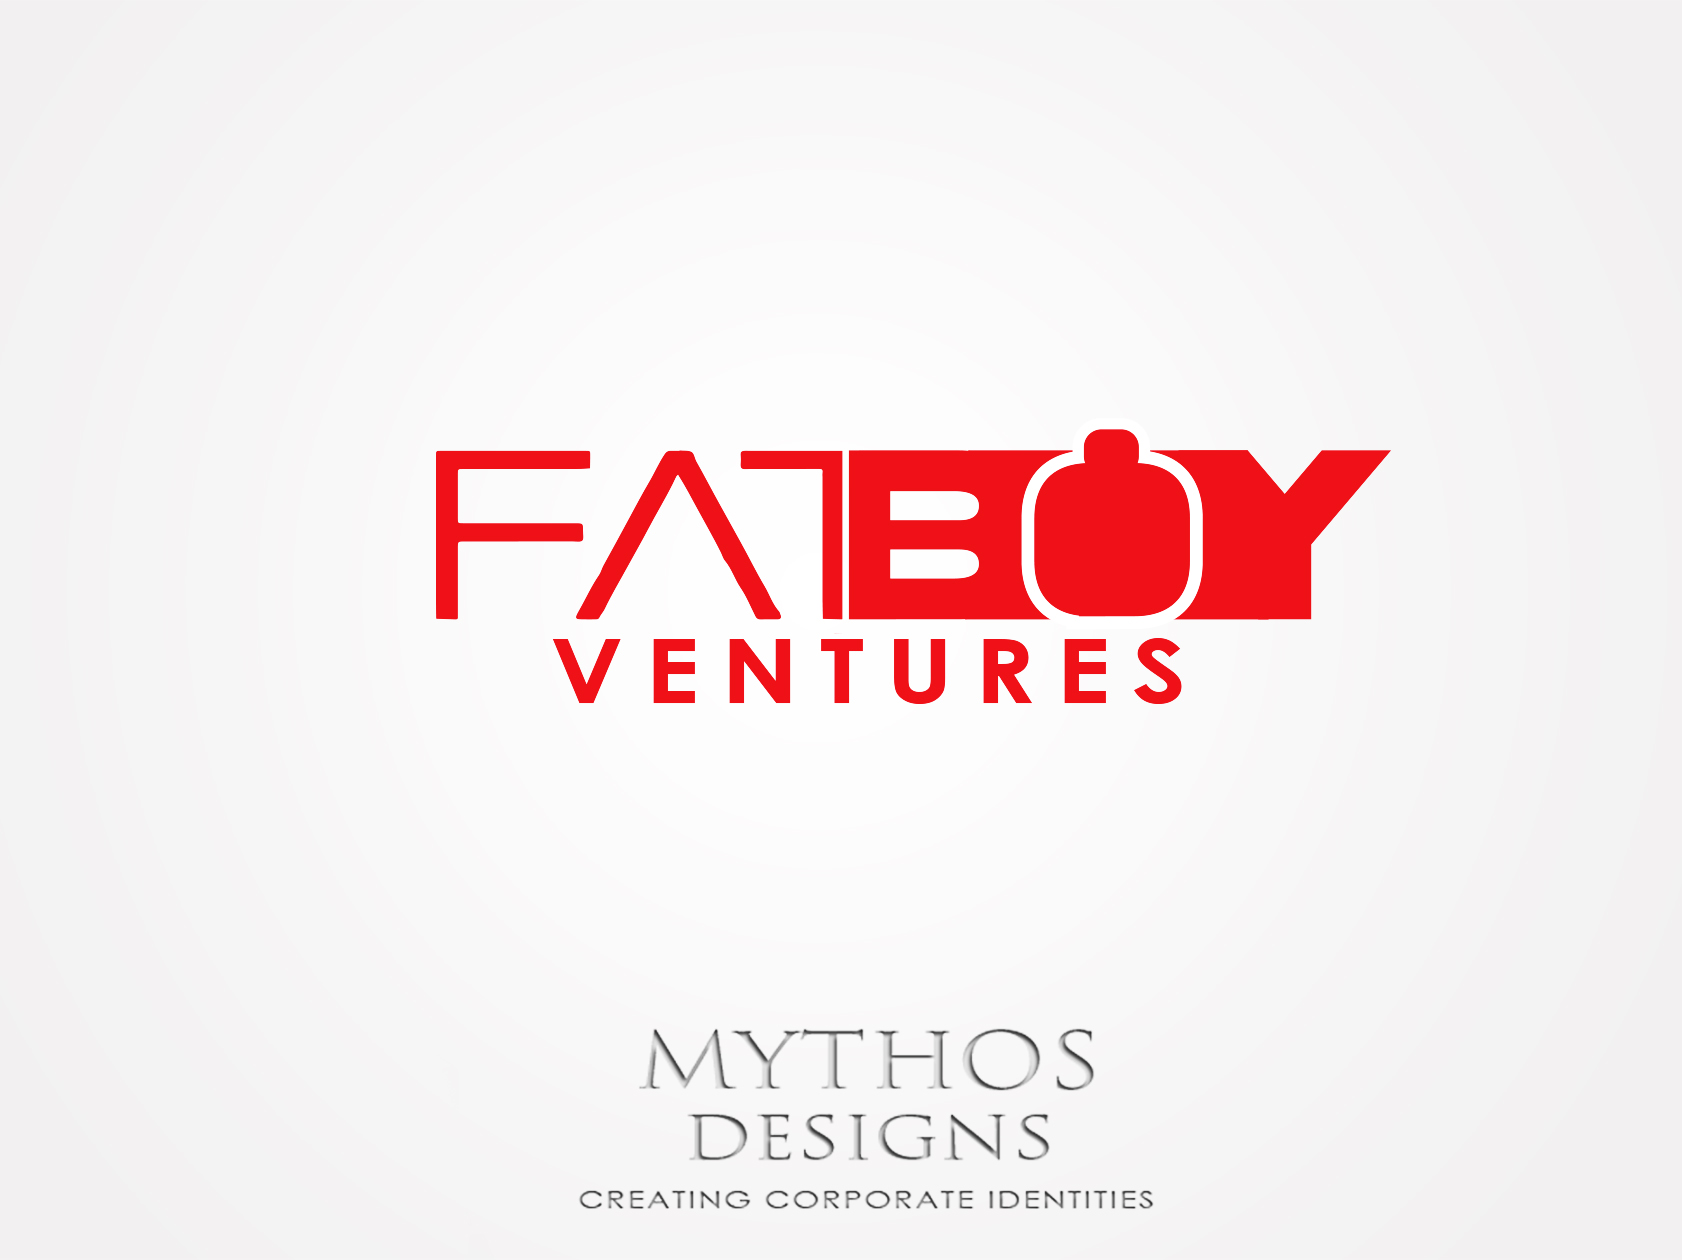 Logo Design by Mythos Designs - Entry No. 128 in the Logo Design Contest Fun Logo Design for Fat Boy Ventures.